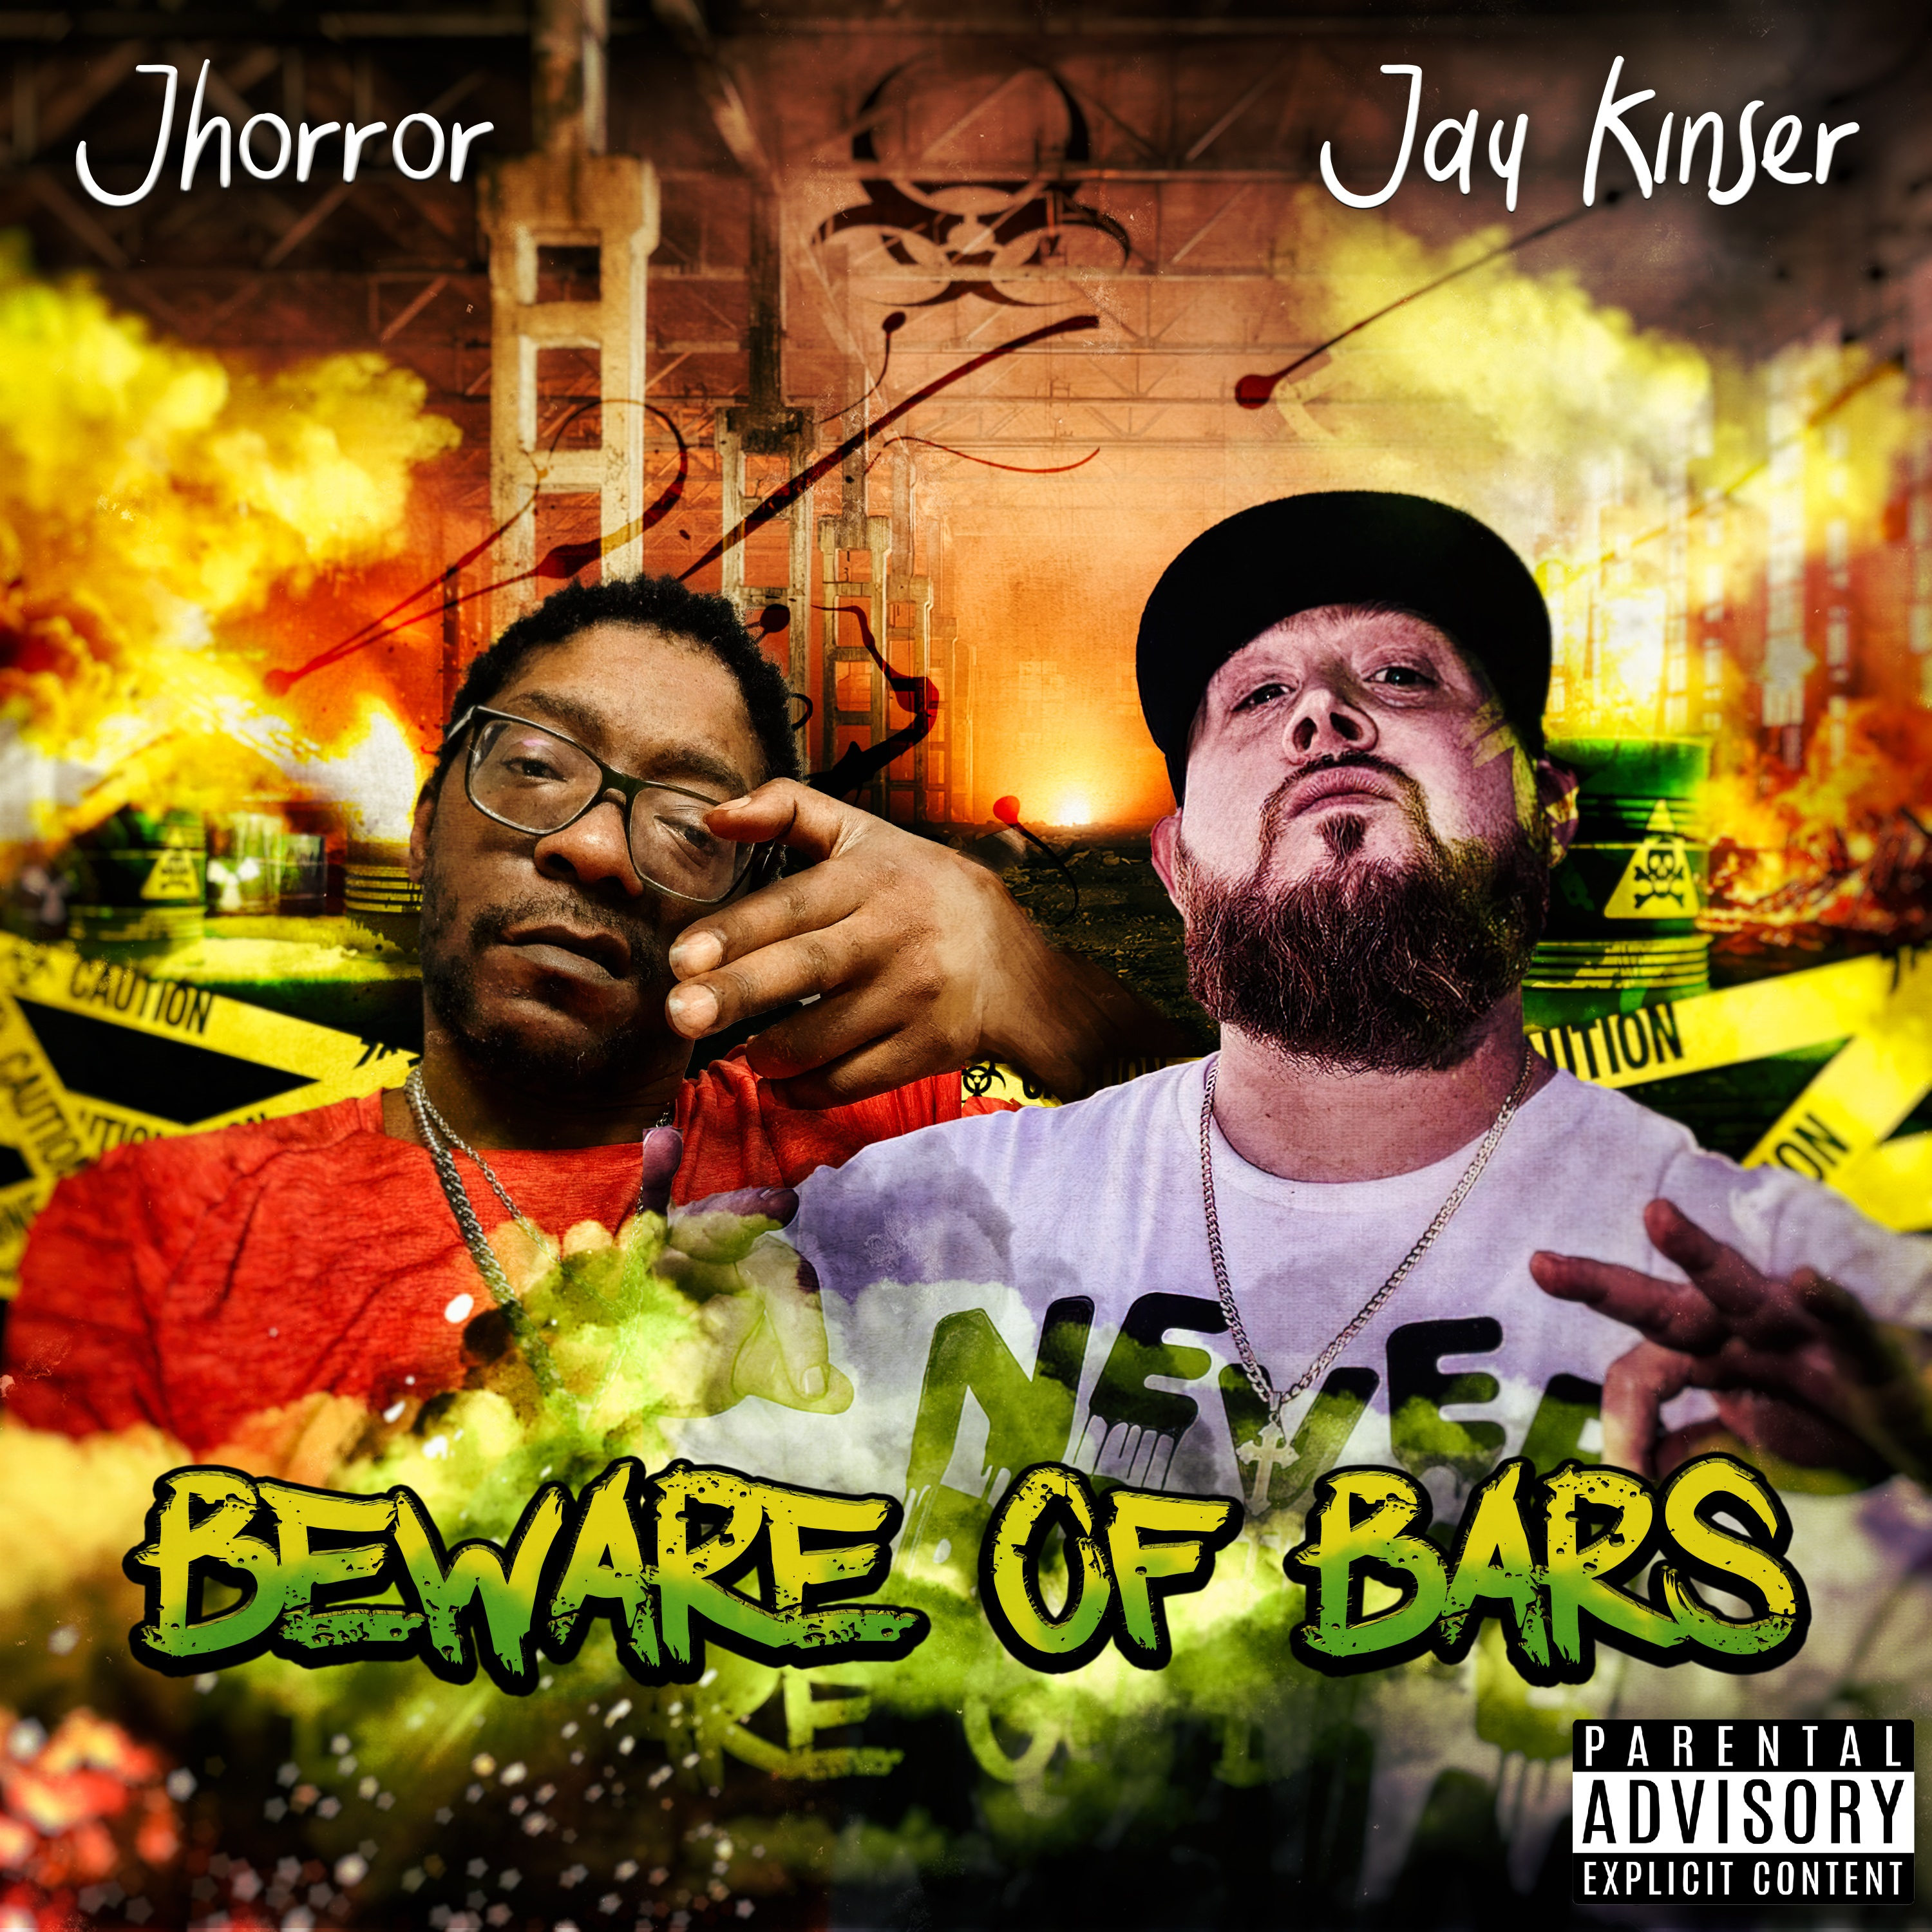 Art for Beware of bars by Jhorror & Jay kinser